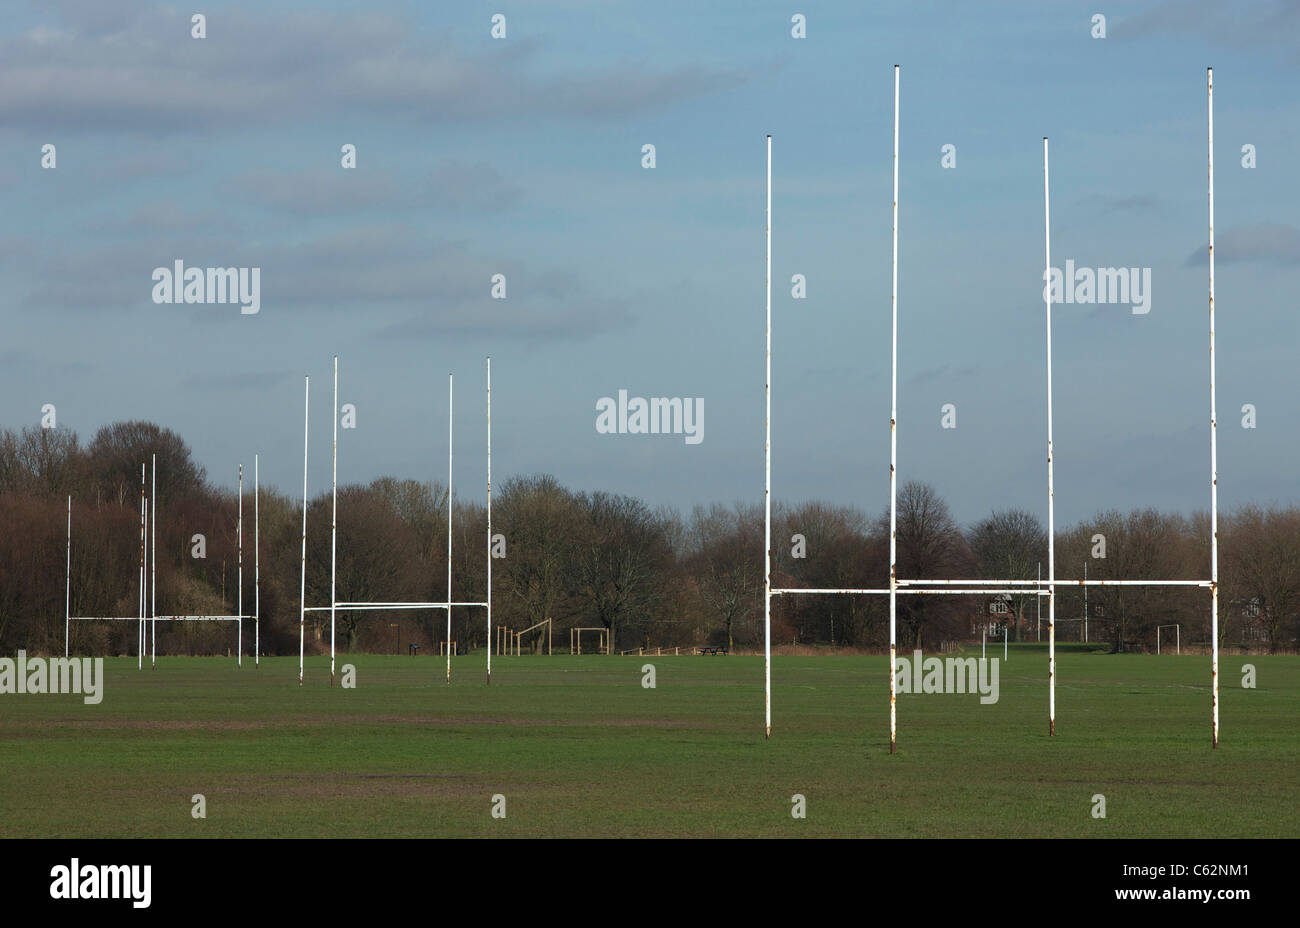 Rugby posts on adjoining pitches - Stock Image